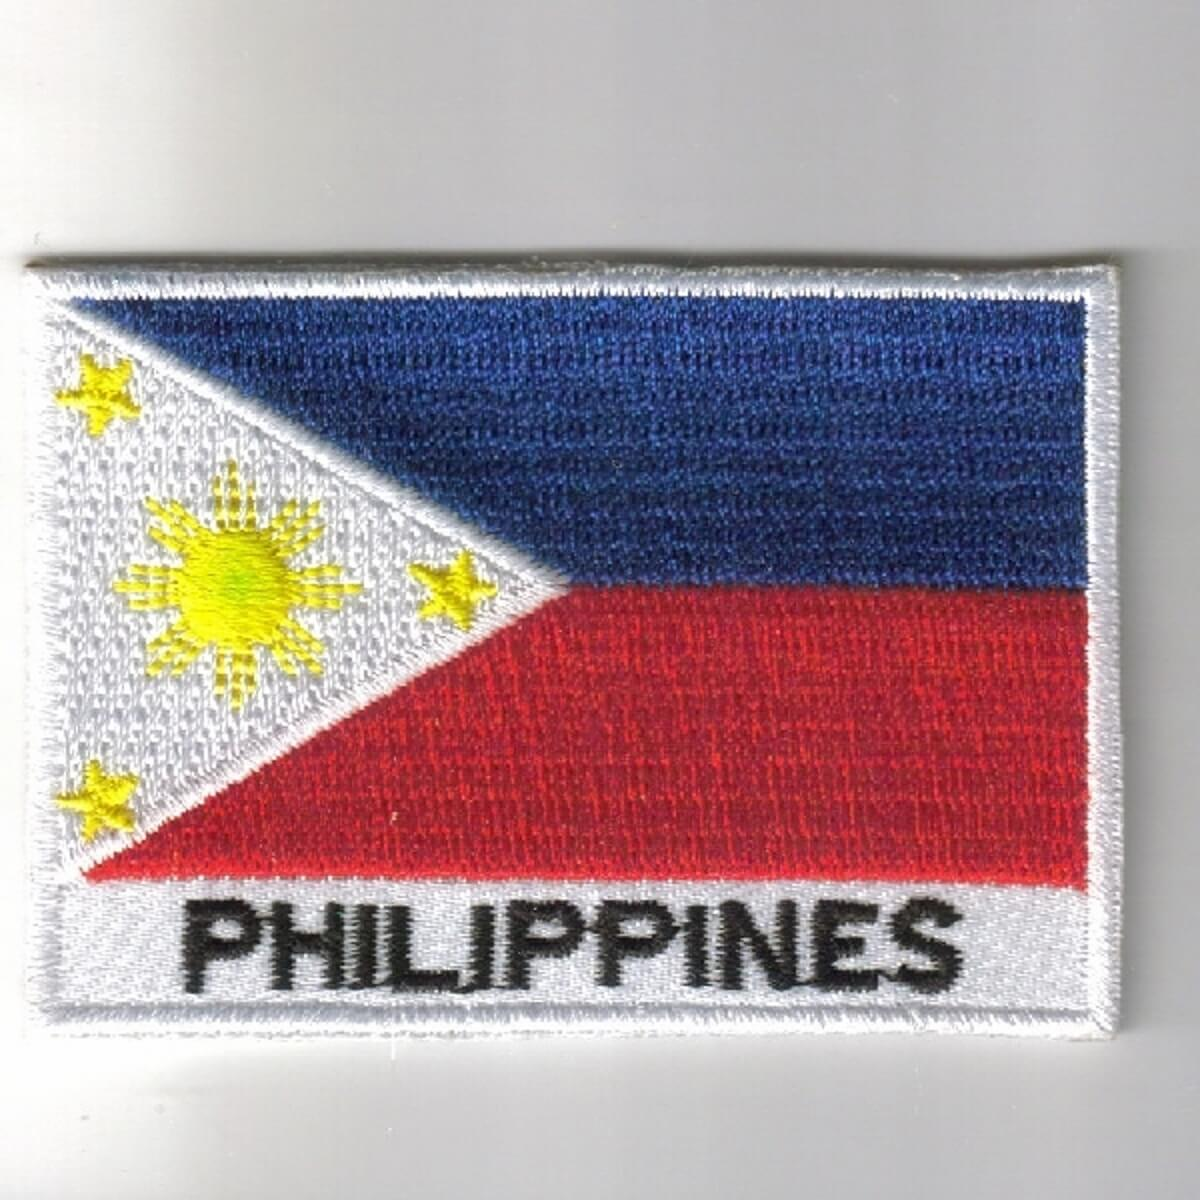 ba1b5b3126d Home   Kitchen Philippines Flag embroidered Iron-On Patch